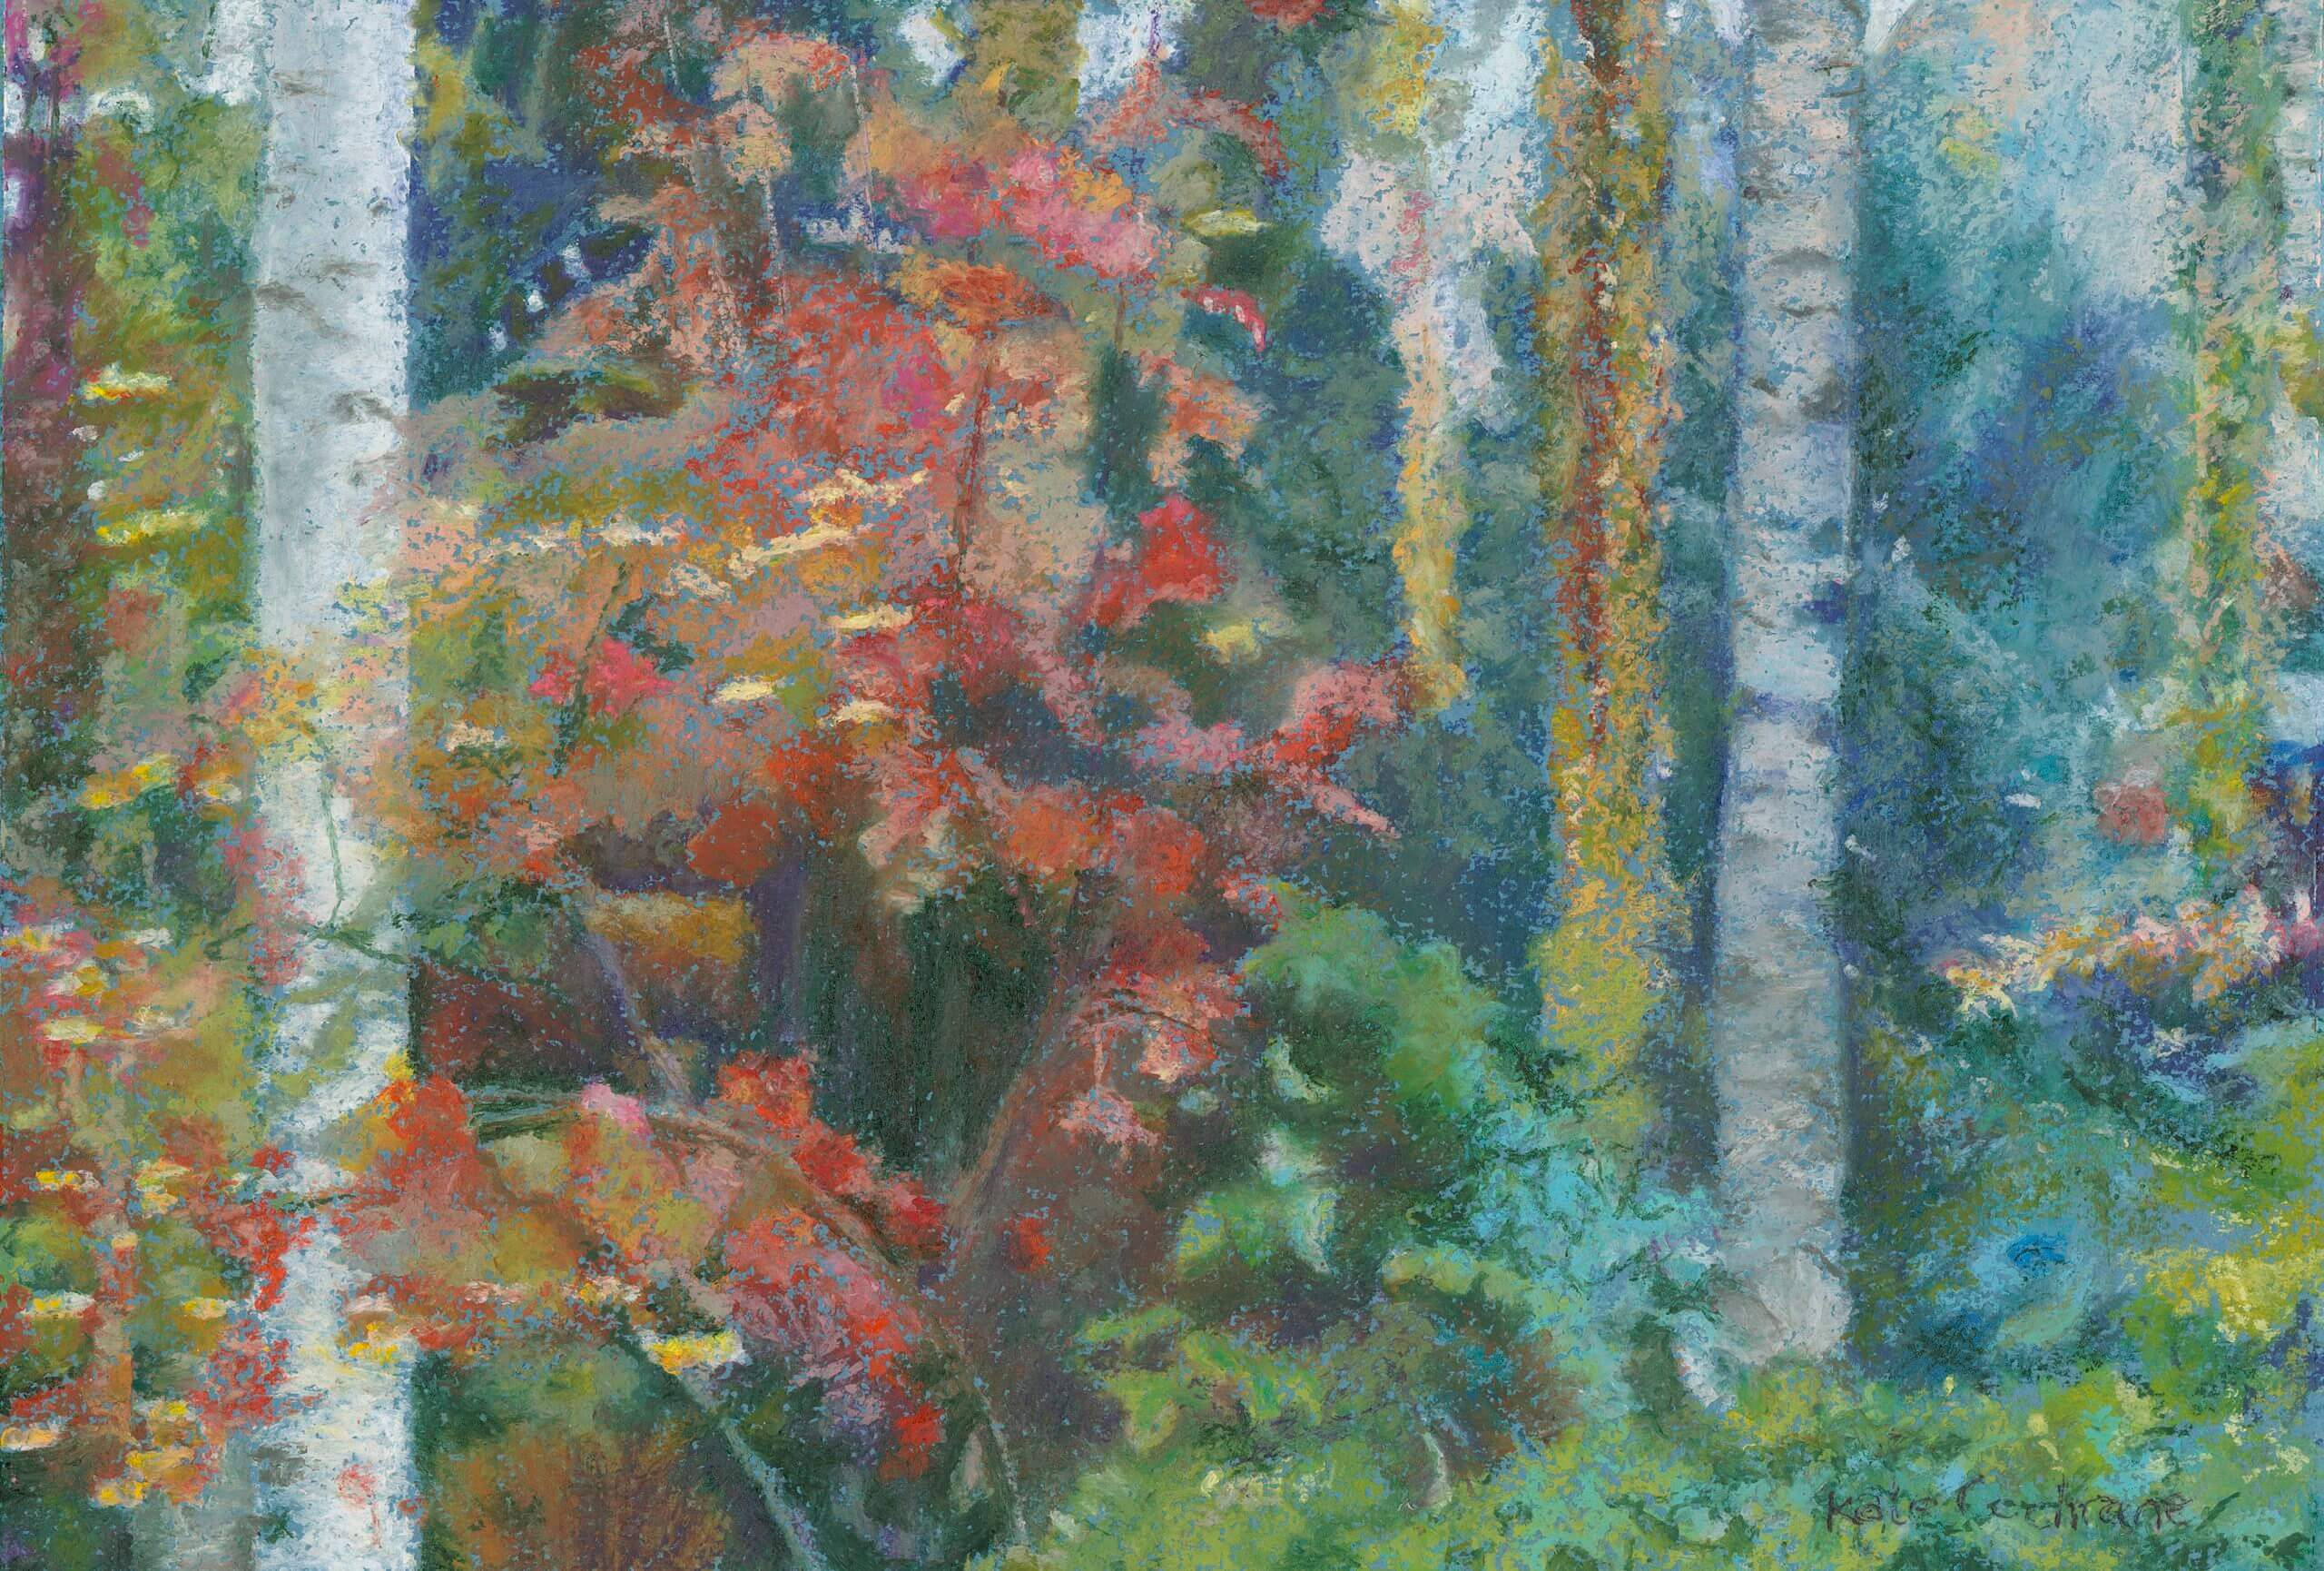 'The Woodland Garden Next Door', Keyford, Frome